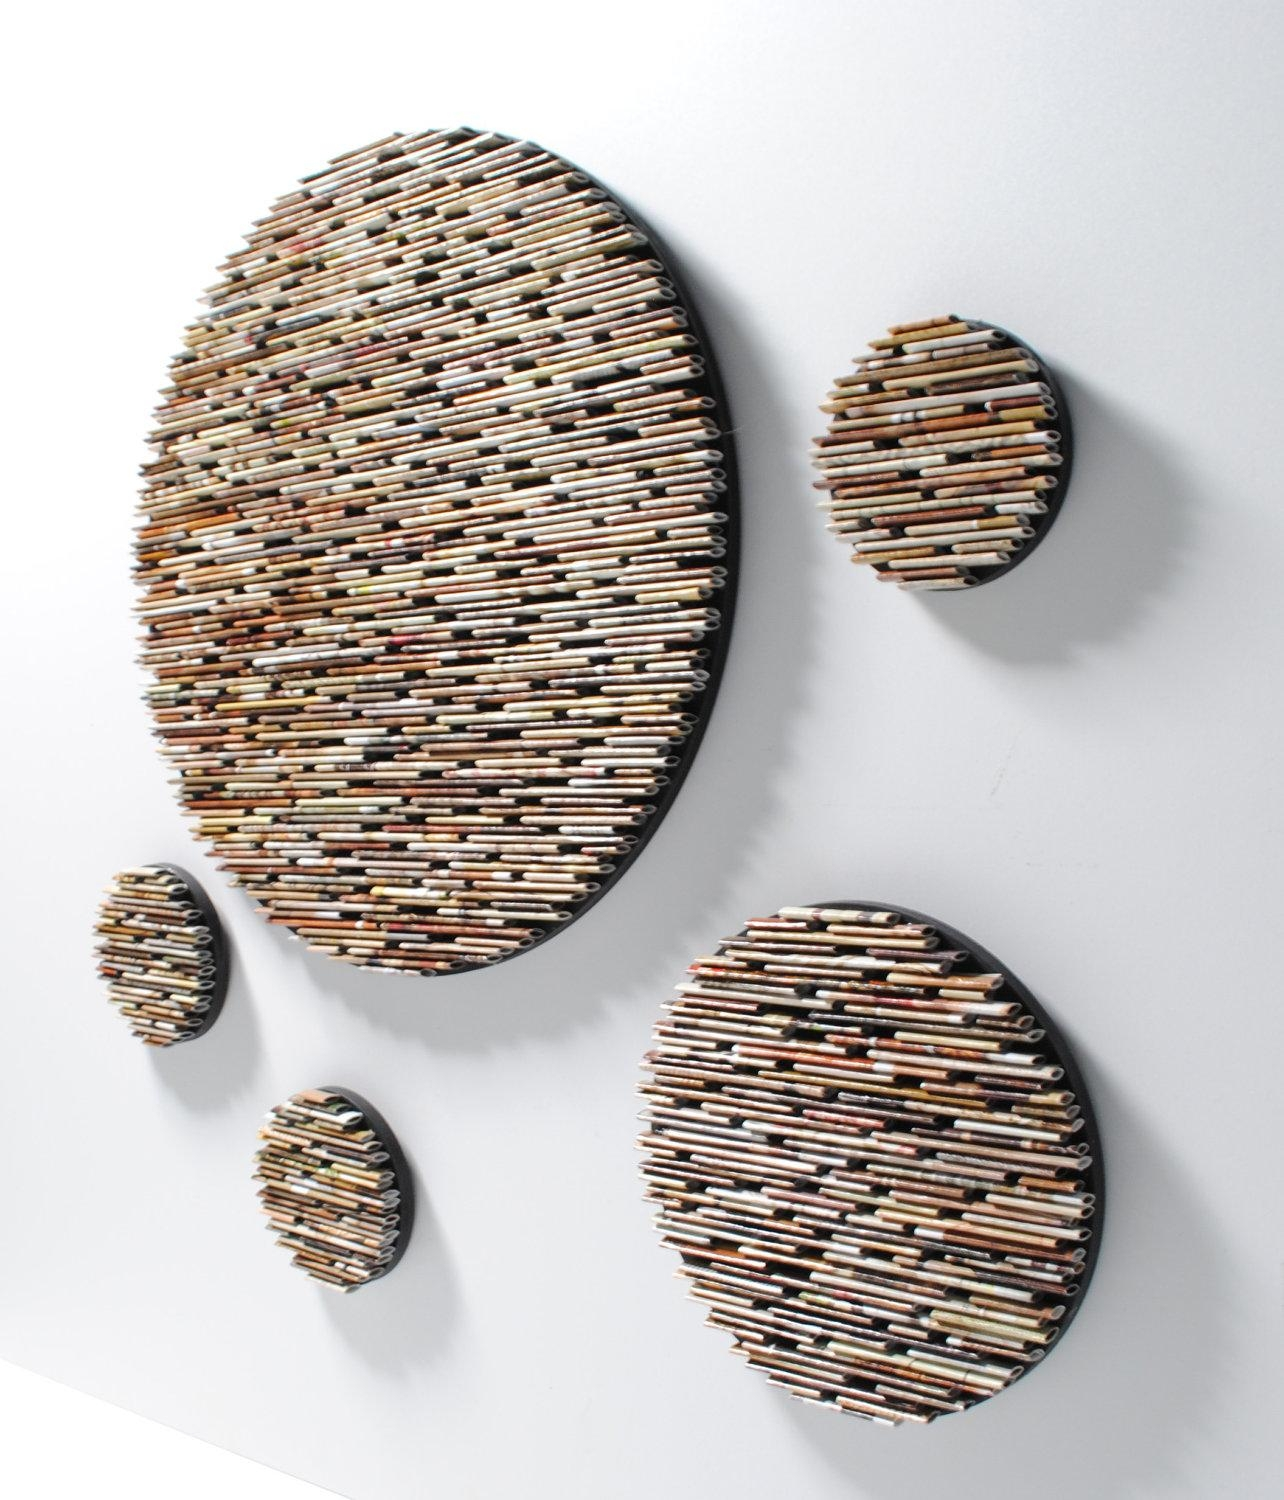 Small Set Of 5 Neutral Colored Round Wall Art  Made From Recycled Inside Recycled Wall Art (Image 18 of 20)